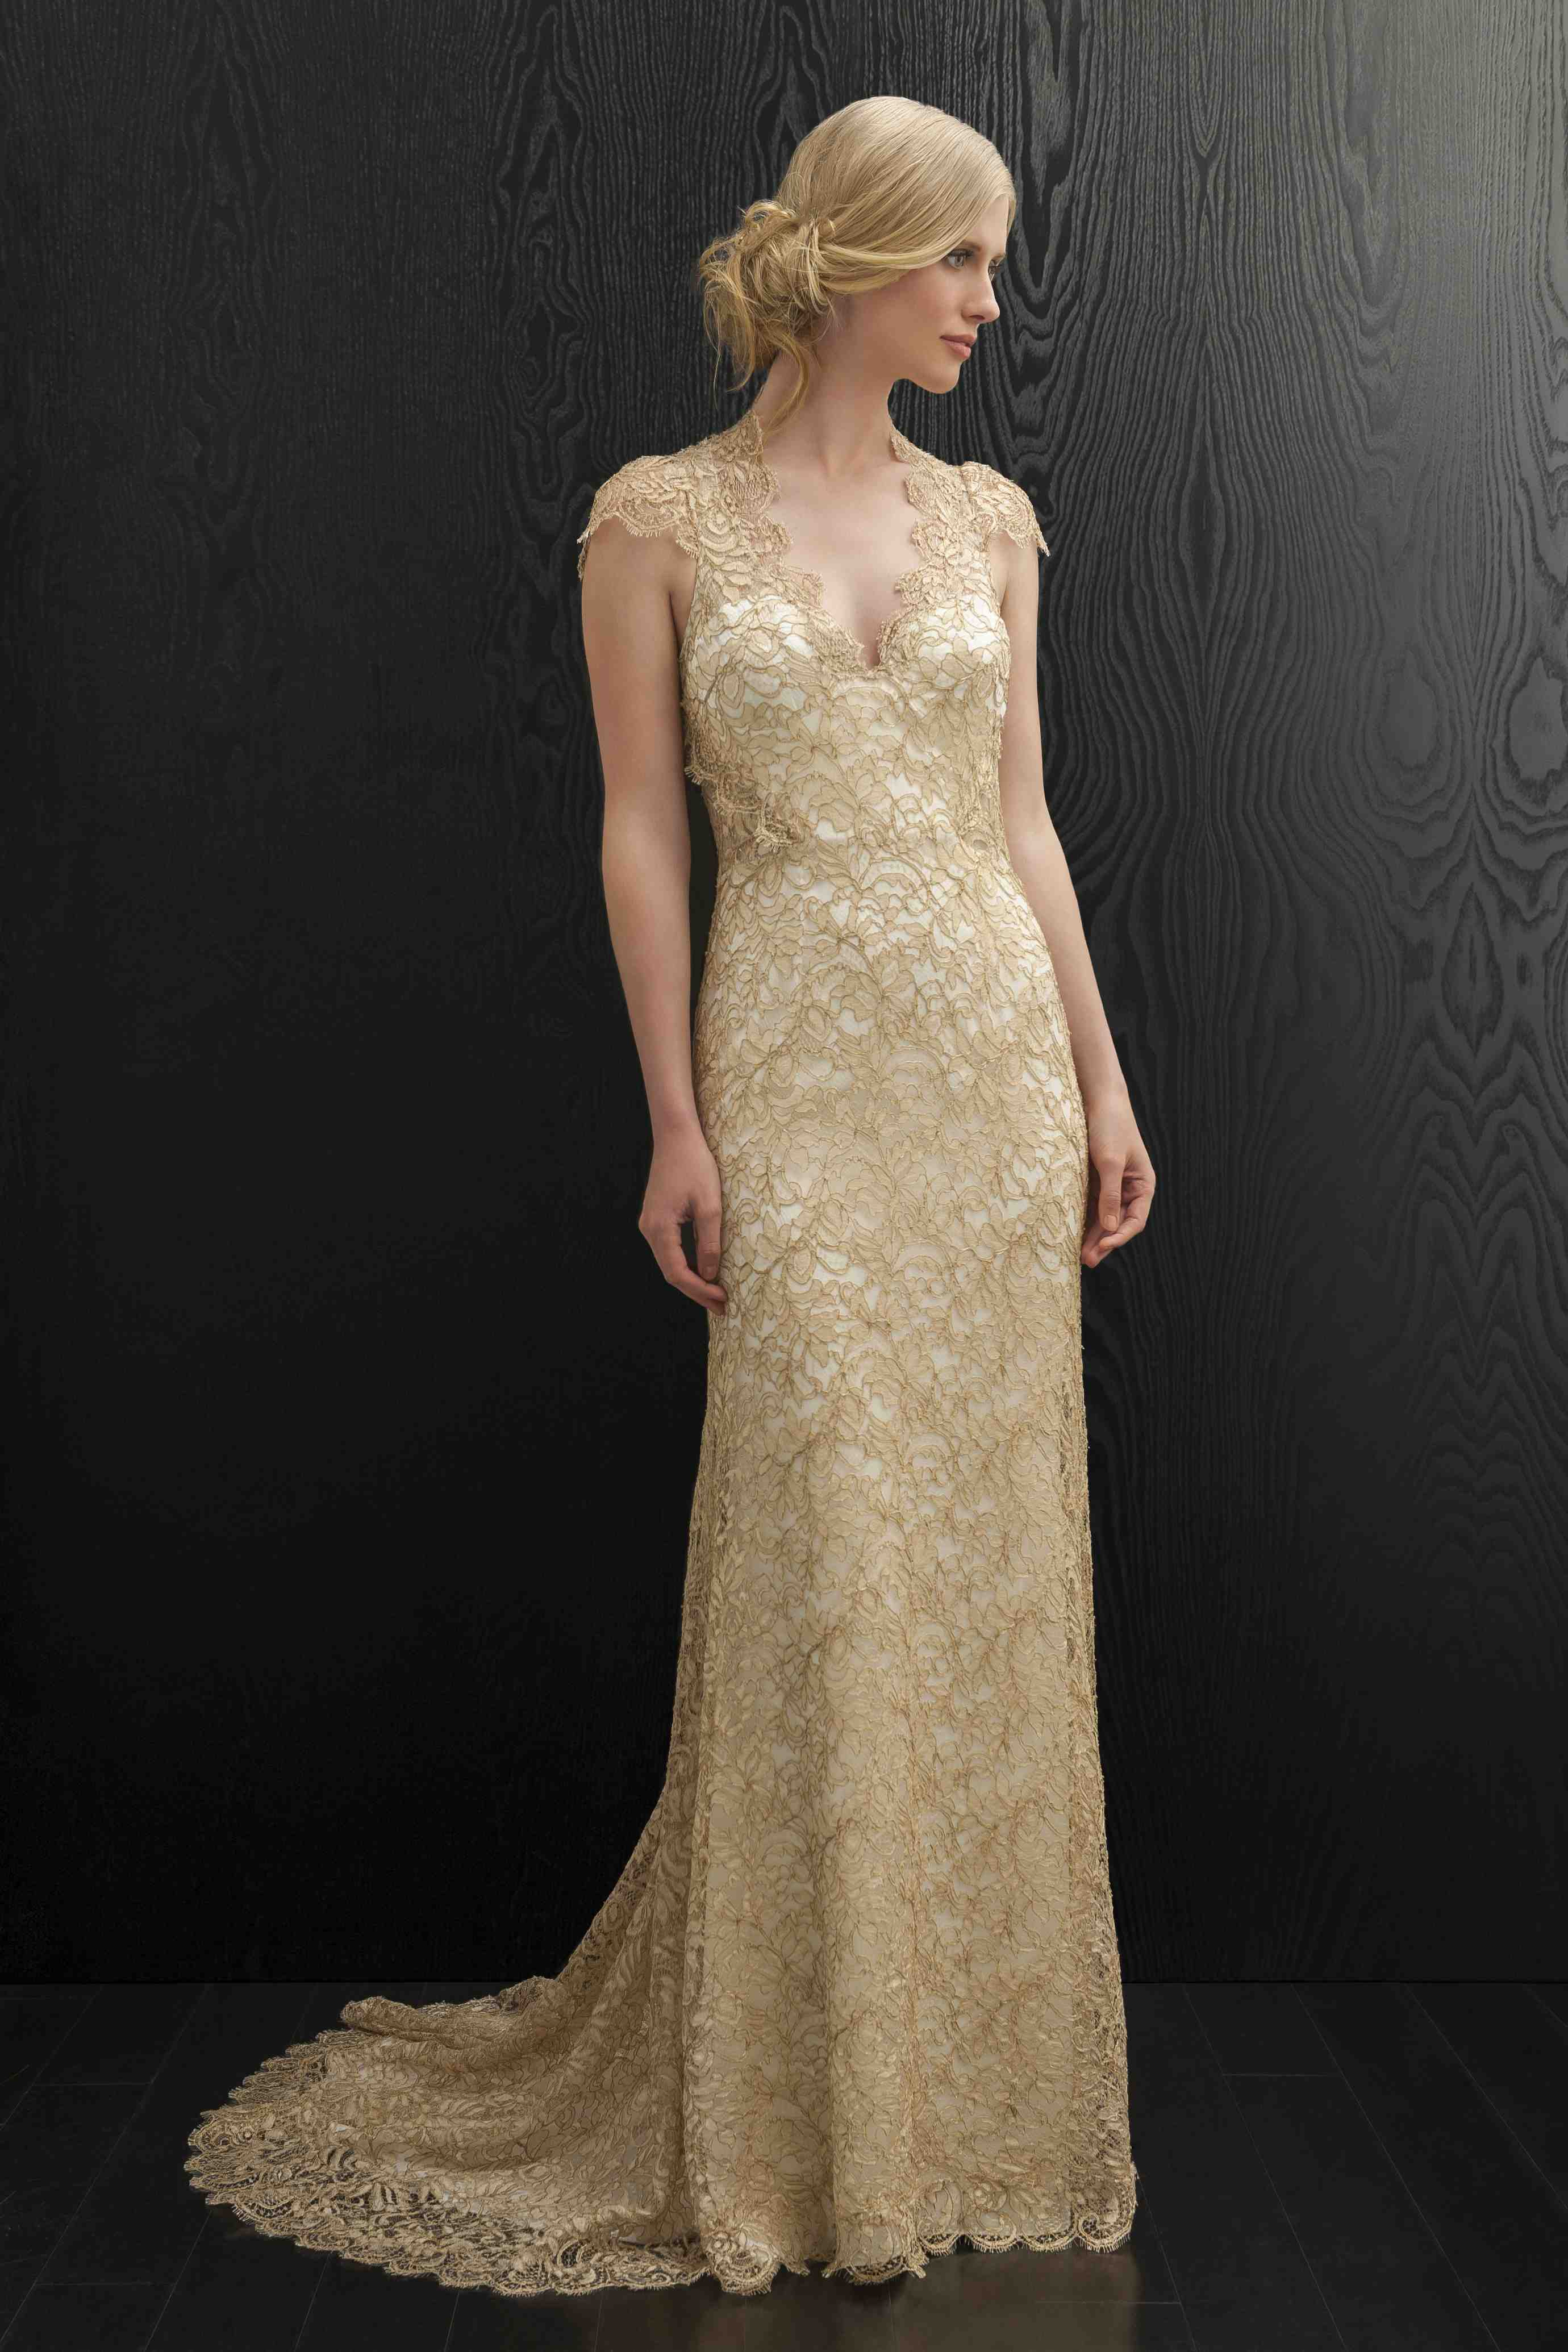 Day into evening wedding gowns - Absolutely Weddings